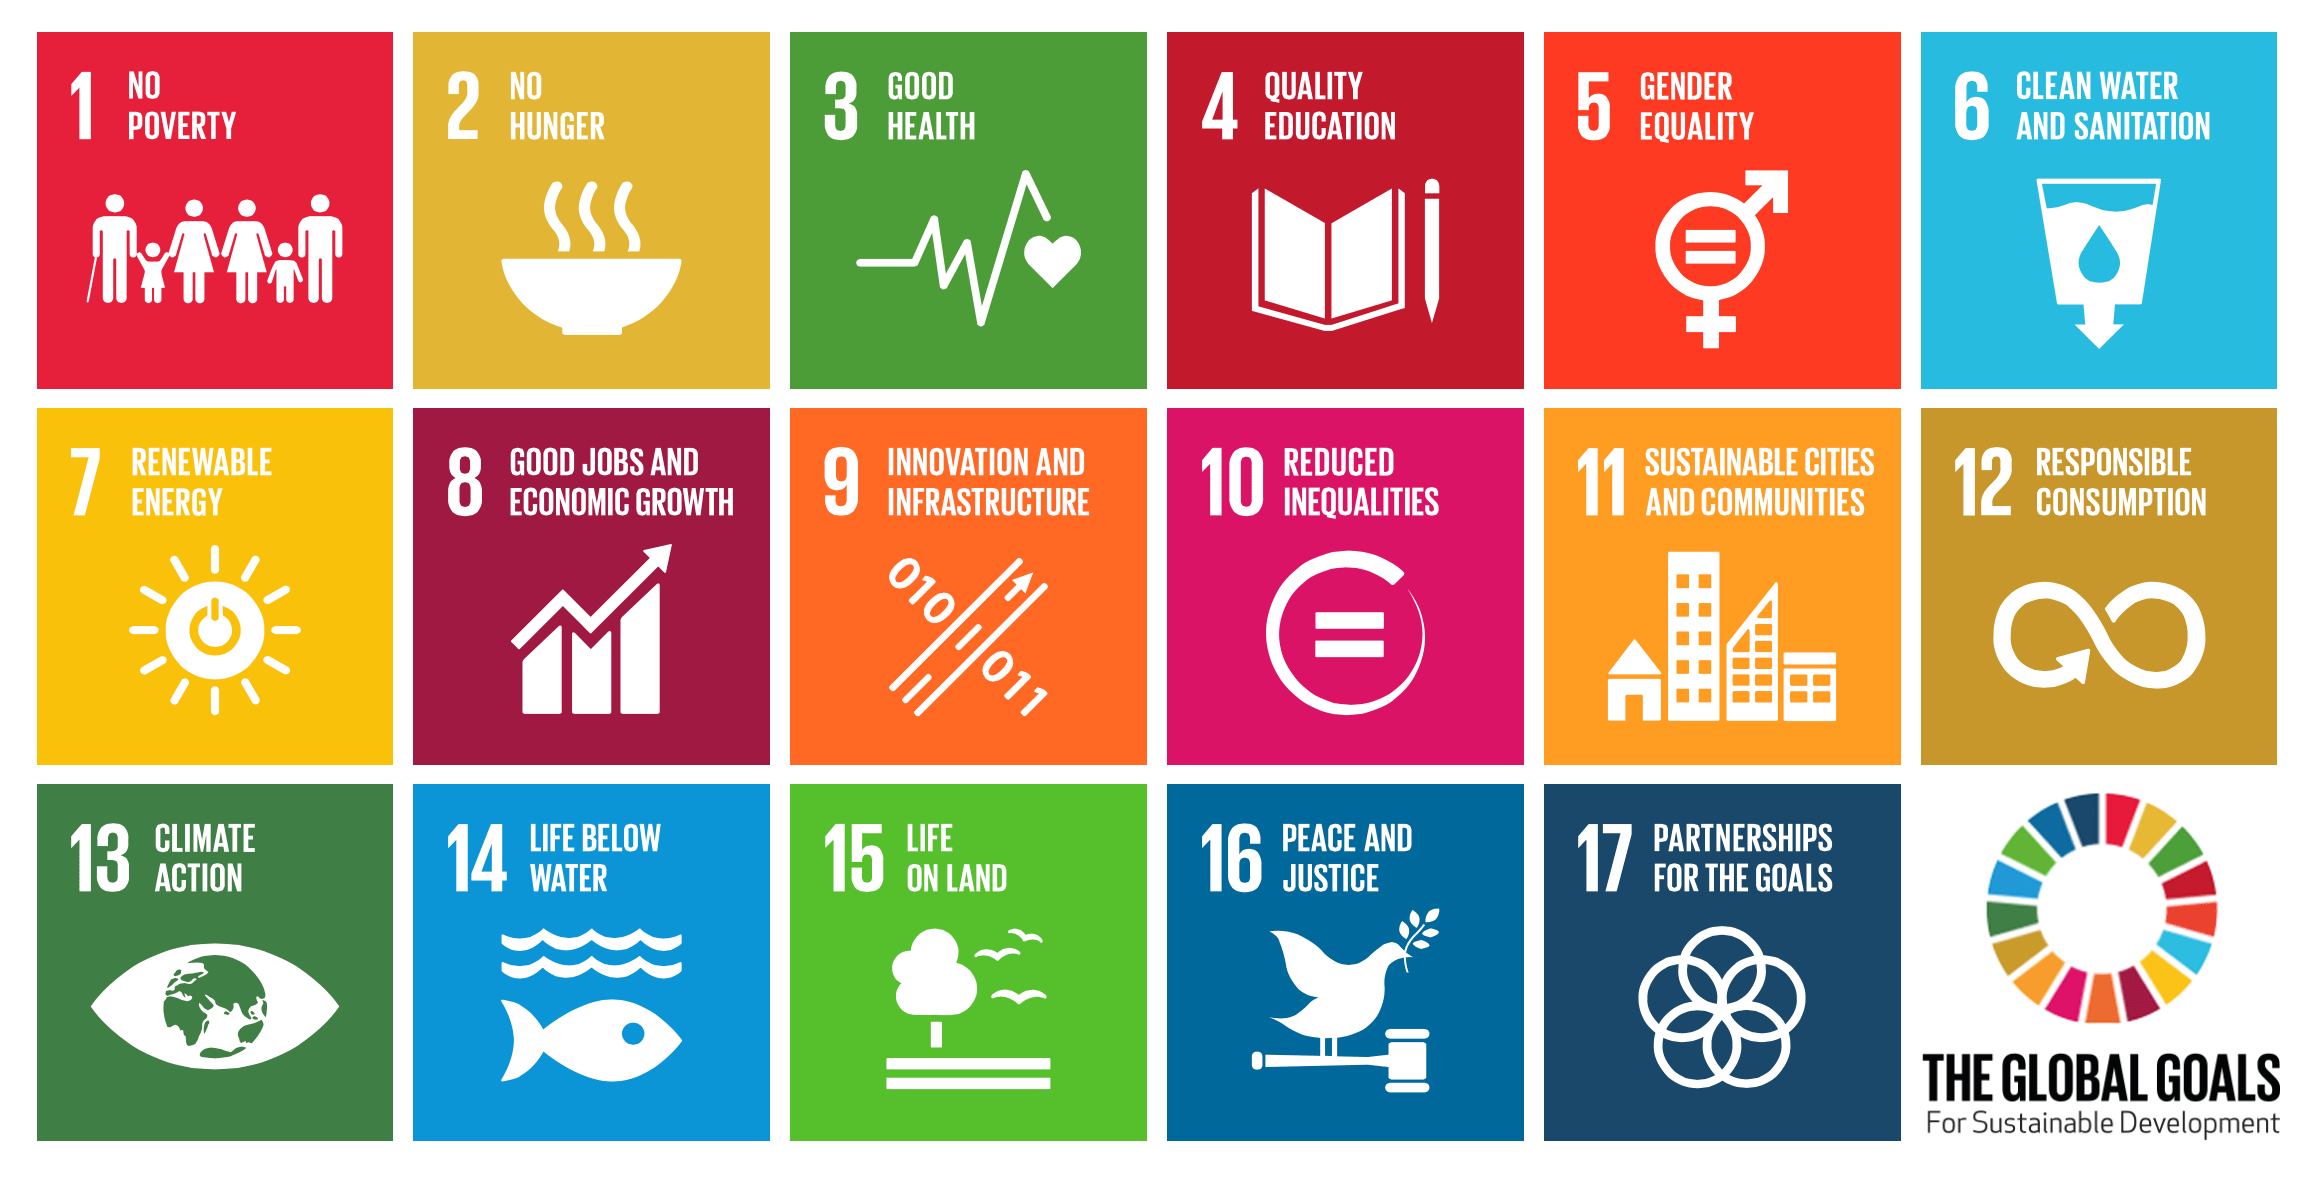 Paper: What Is Needed To Achieve The Sustainable Development Goals?